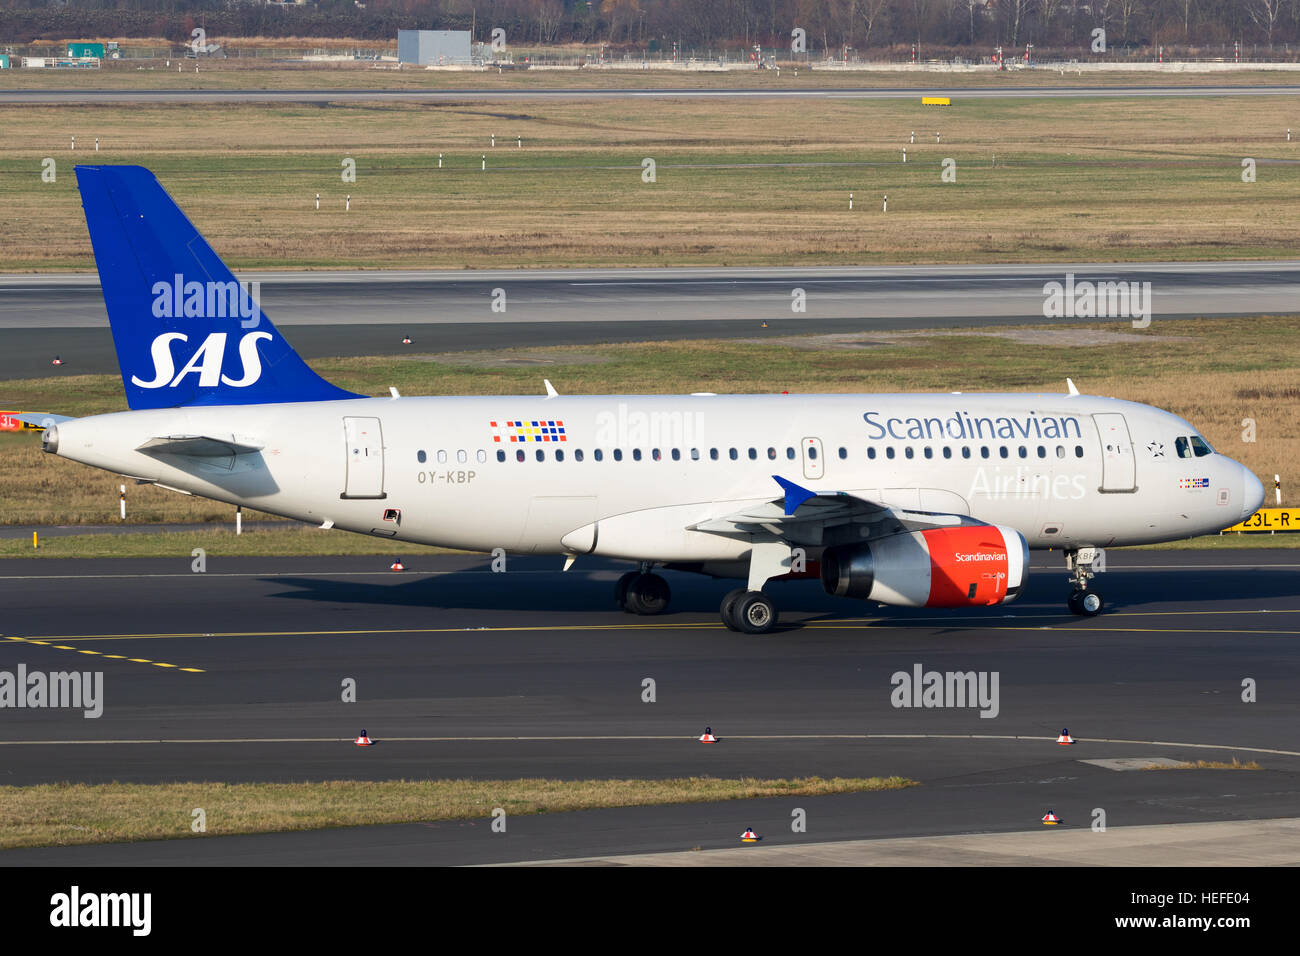 Airbus A319 from SAS Scandinavian Airlines taxiing before take off from Düsseldorf airport - Stock Image